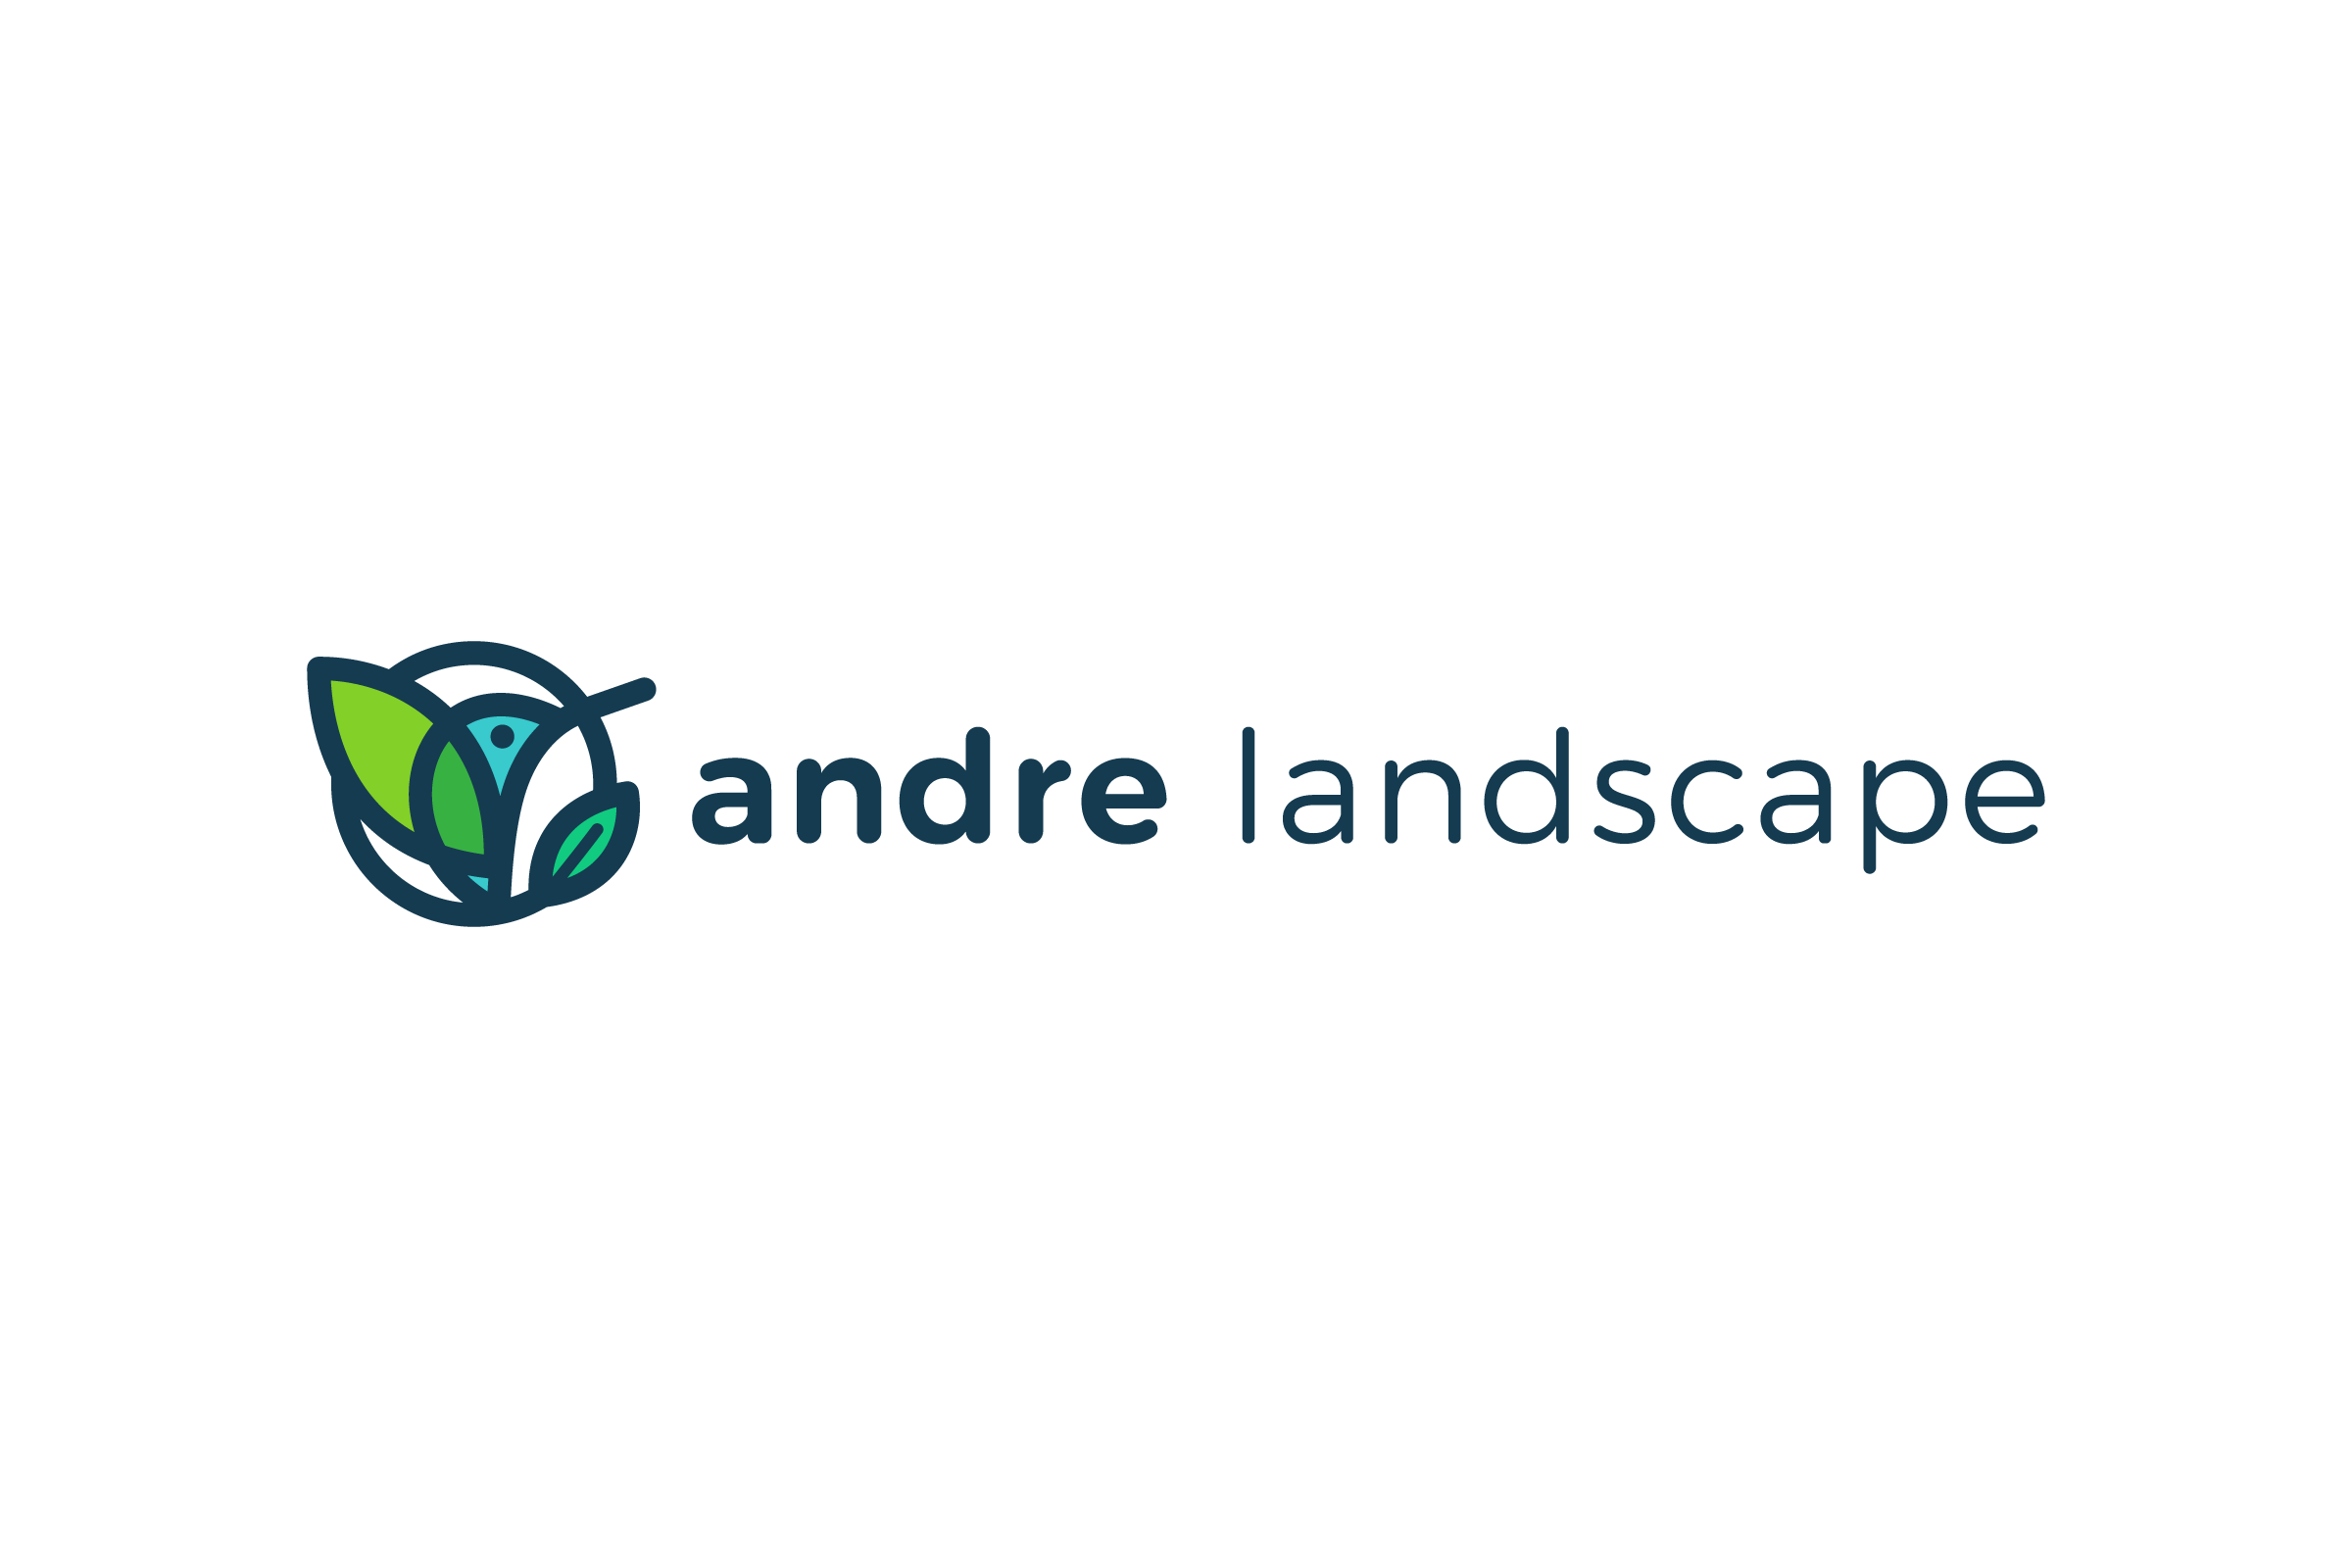 andre logo design final Tubik